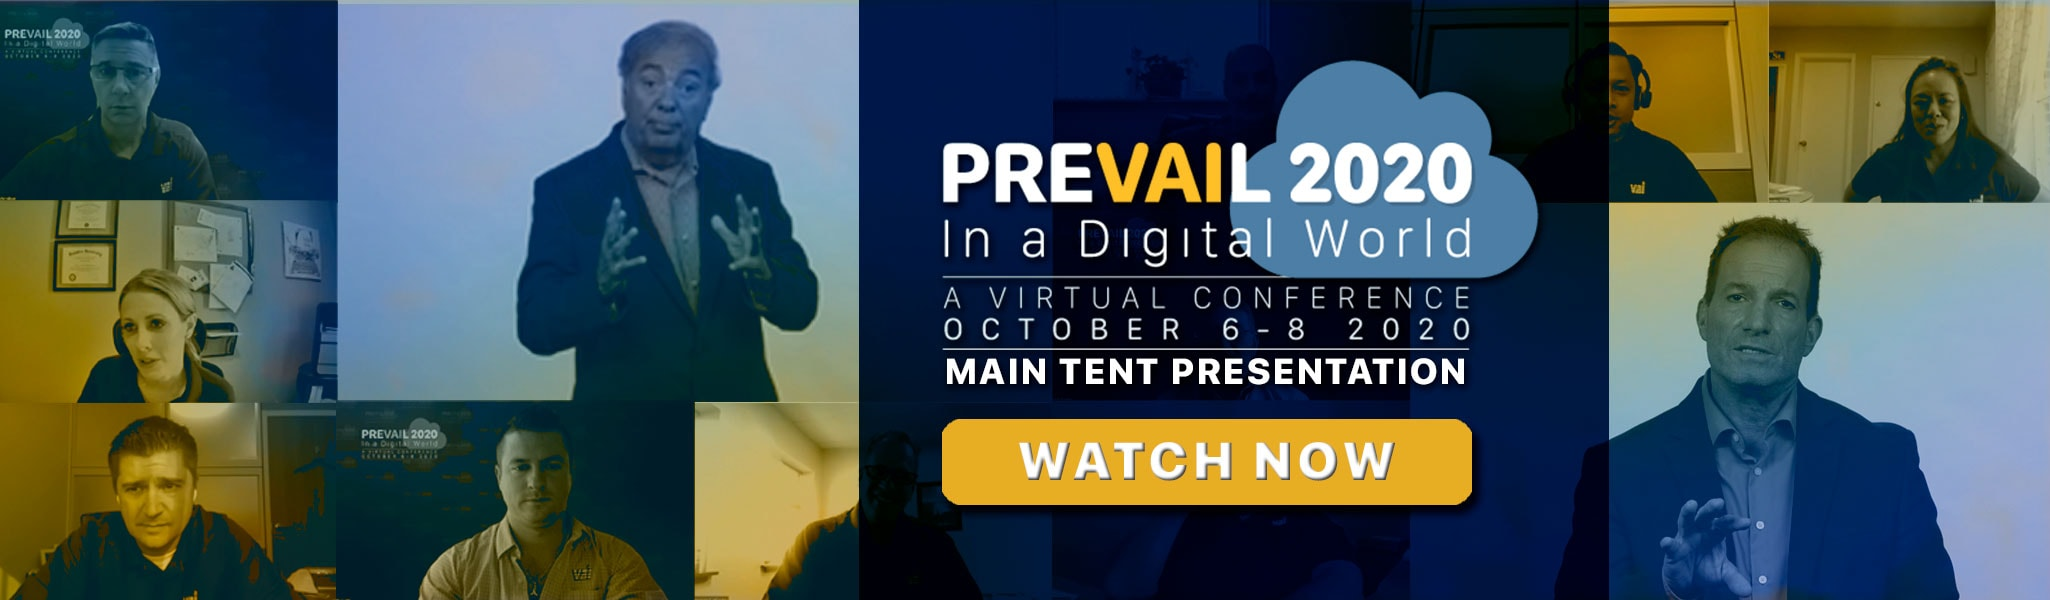 Prevail 2020 In A Digital World | A Virtual Conference | October 6-8